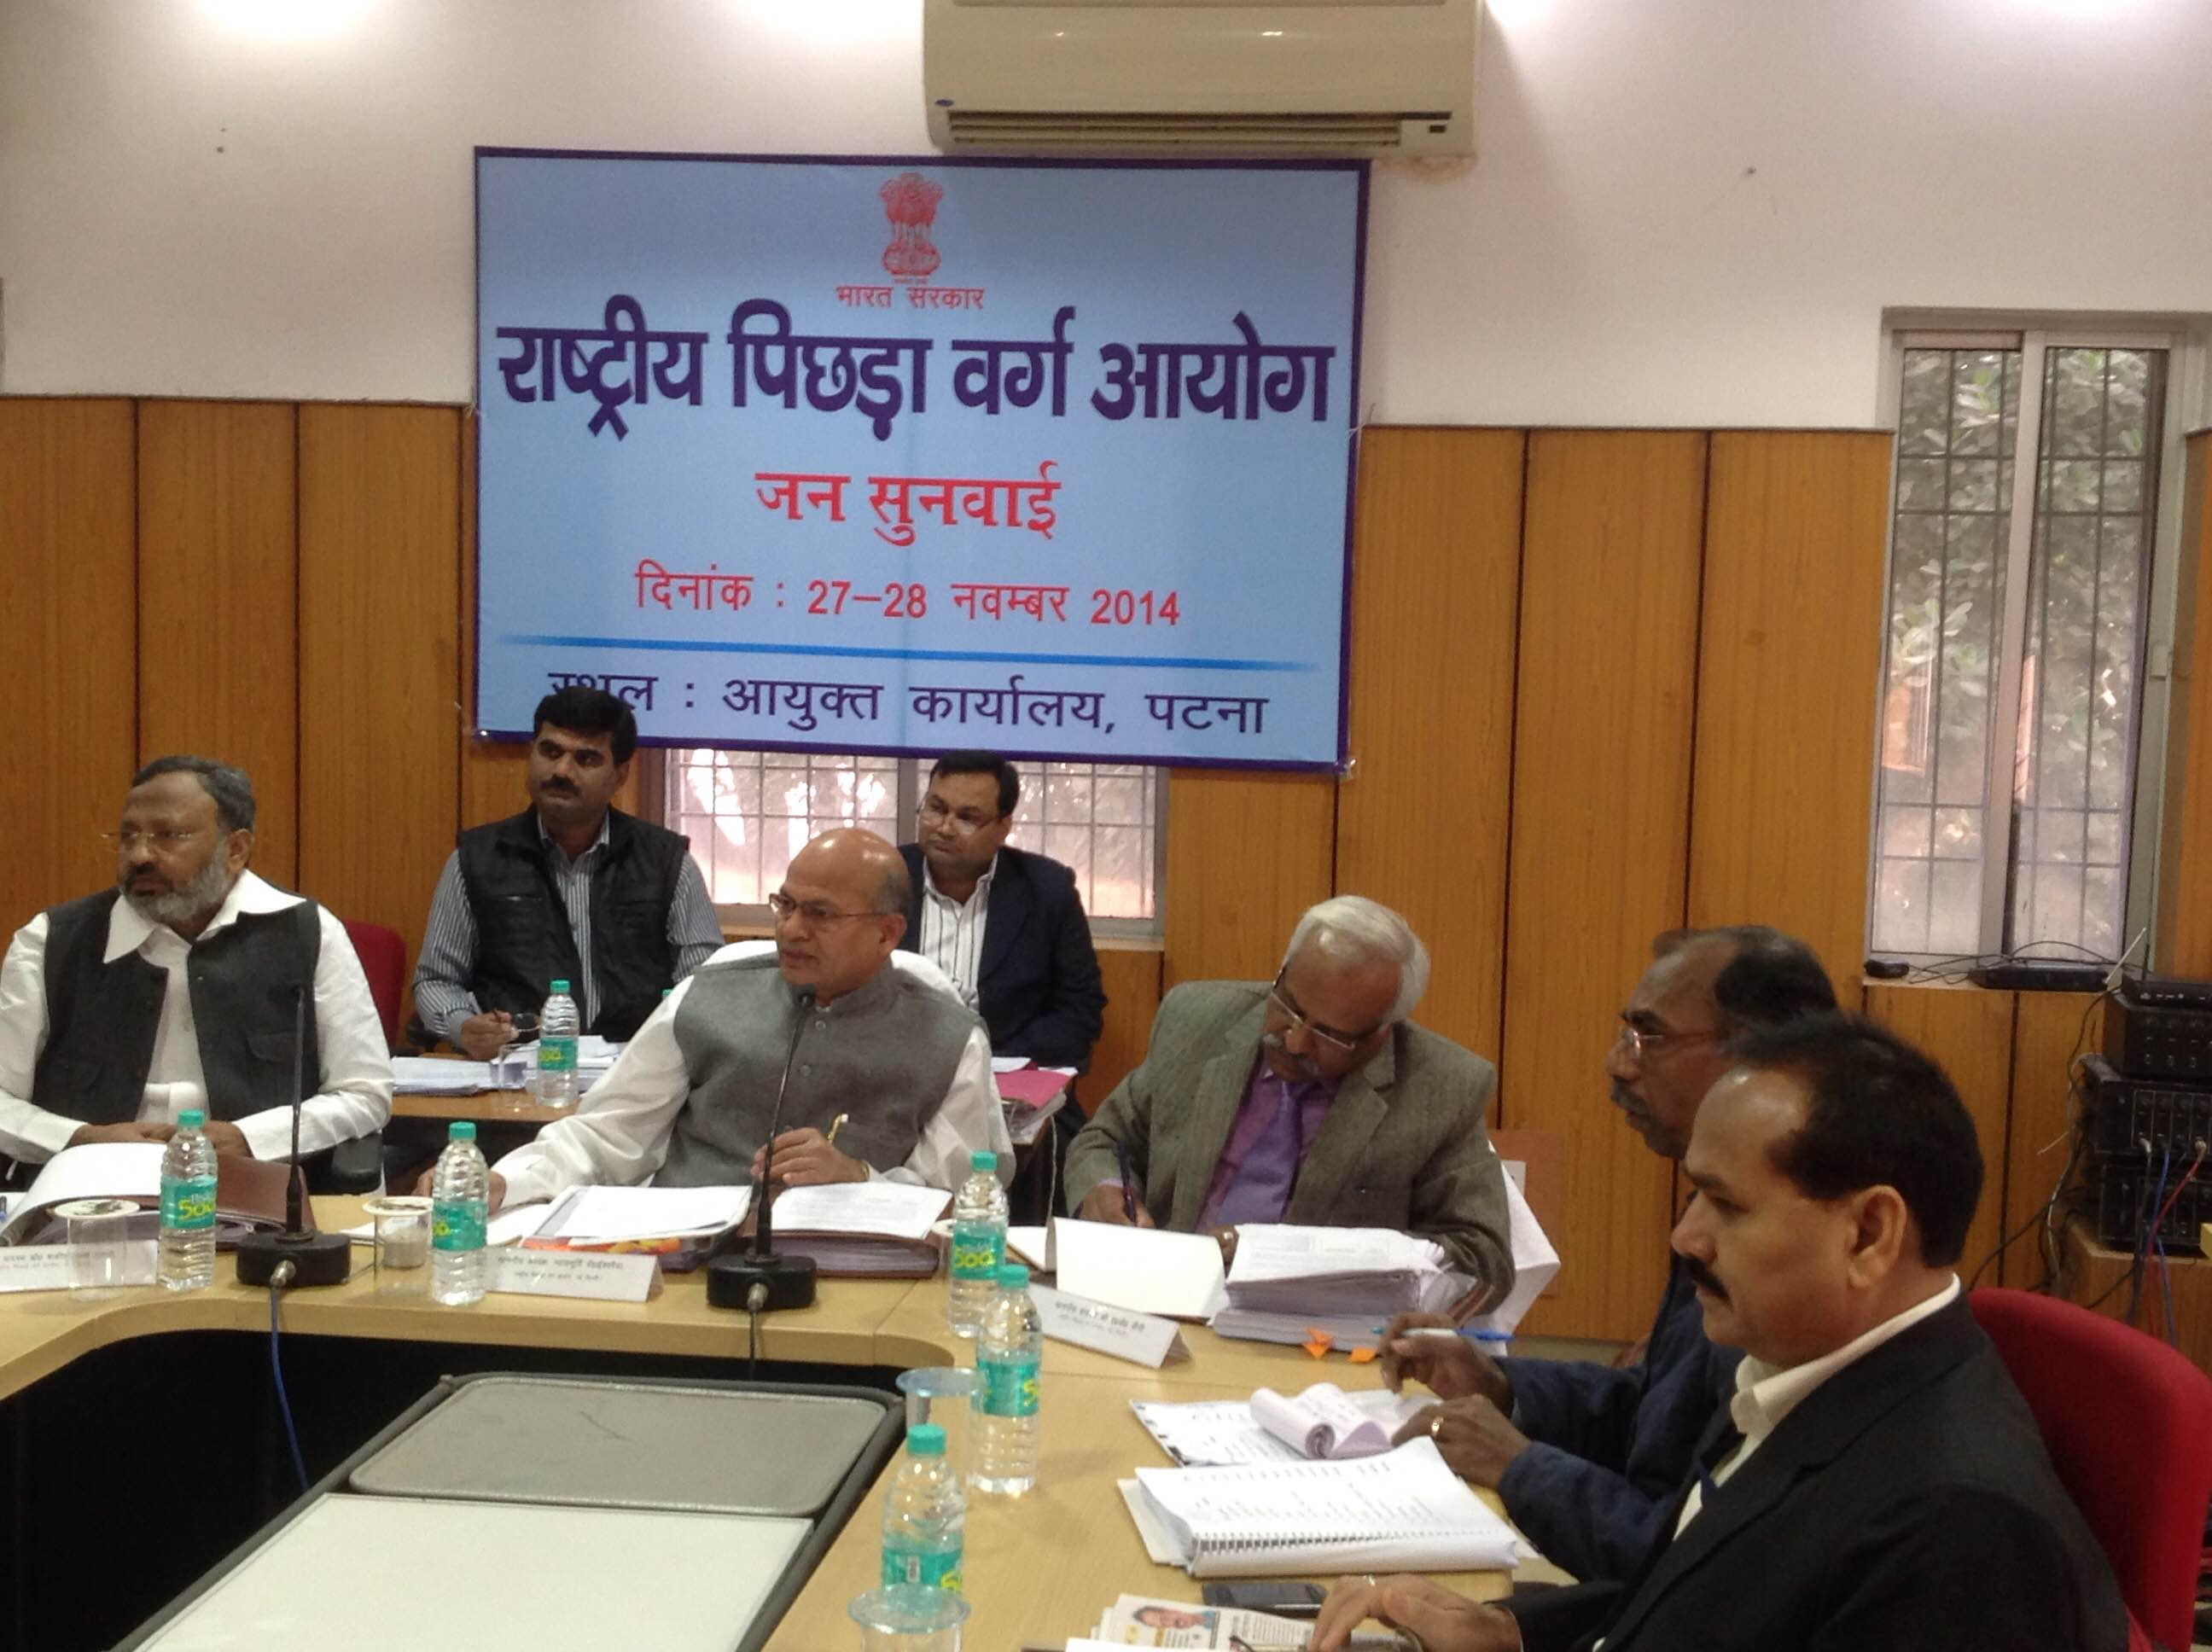 Public Hearing held at Bihar from 27-28 November 2014.